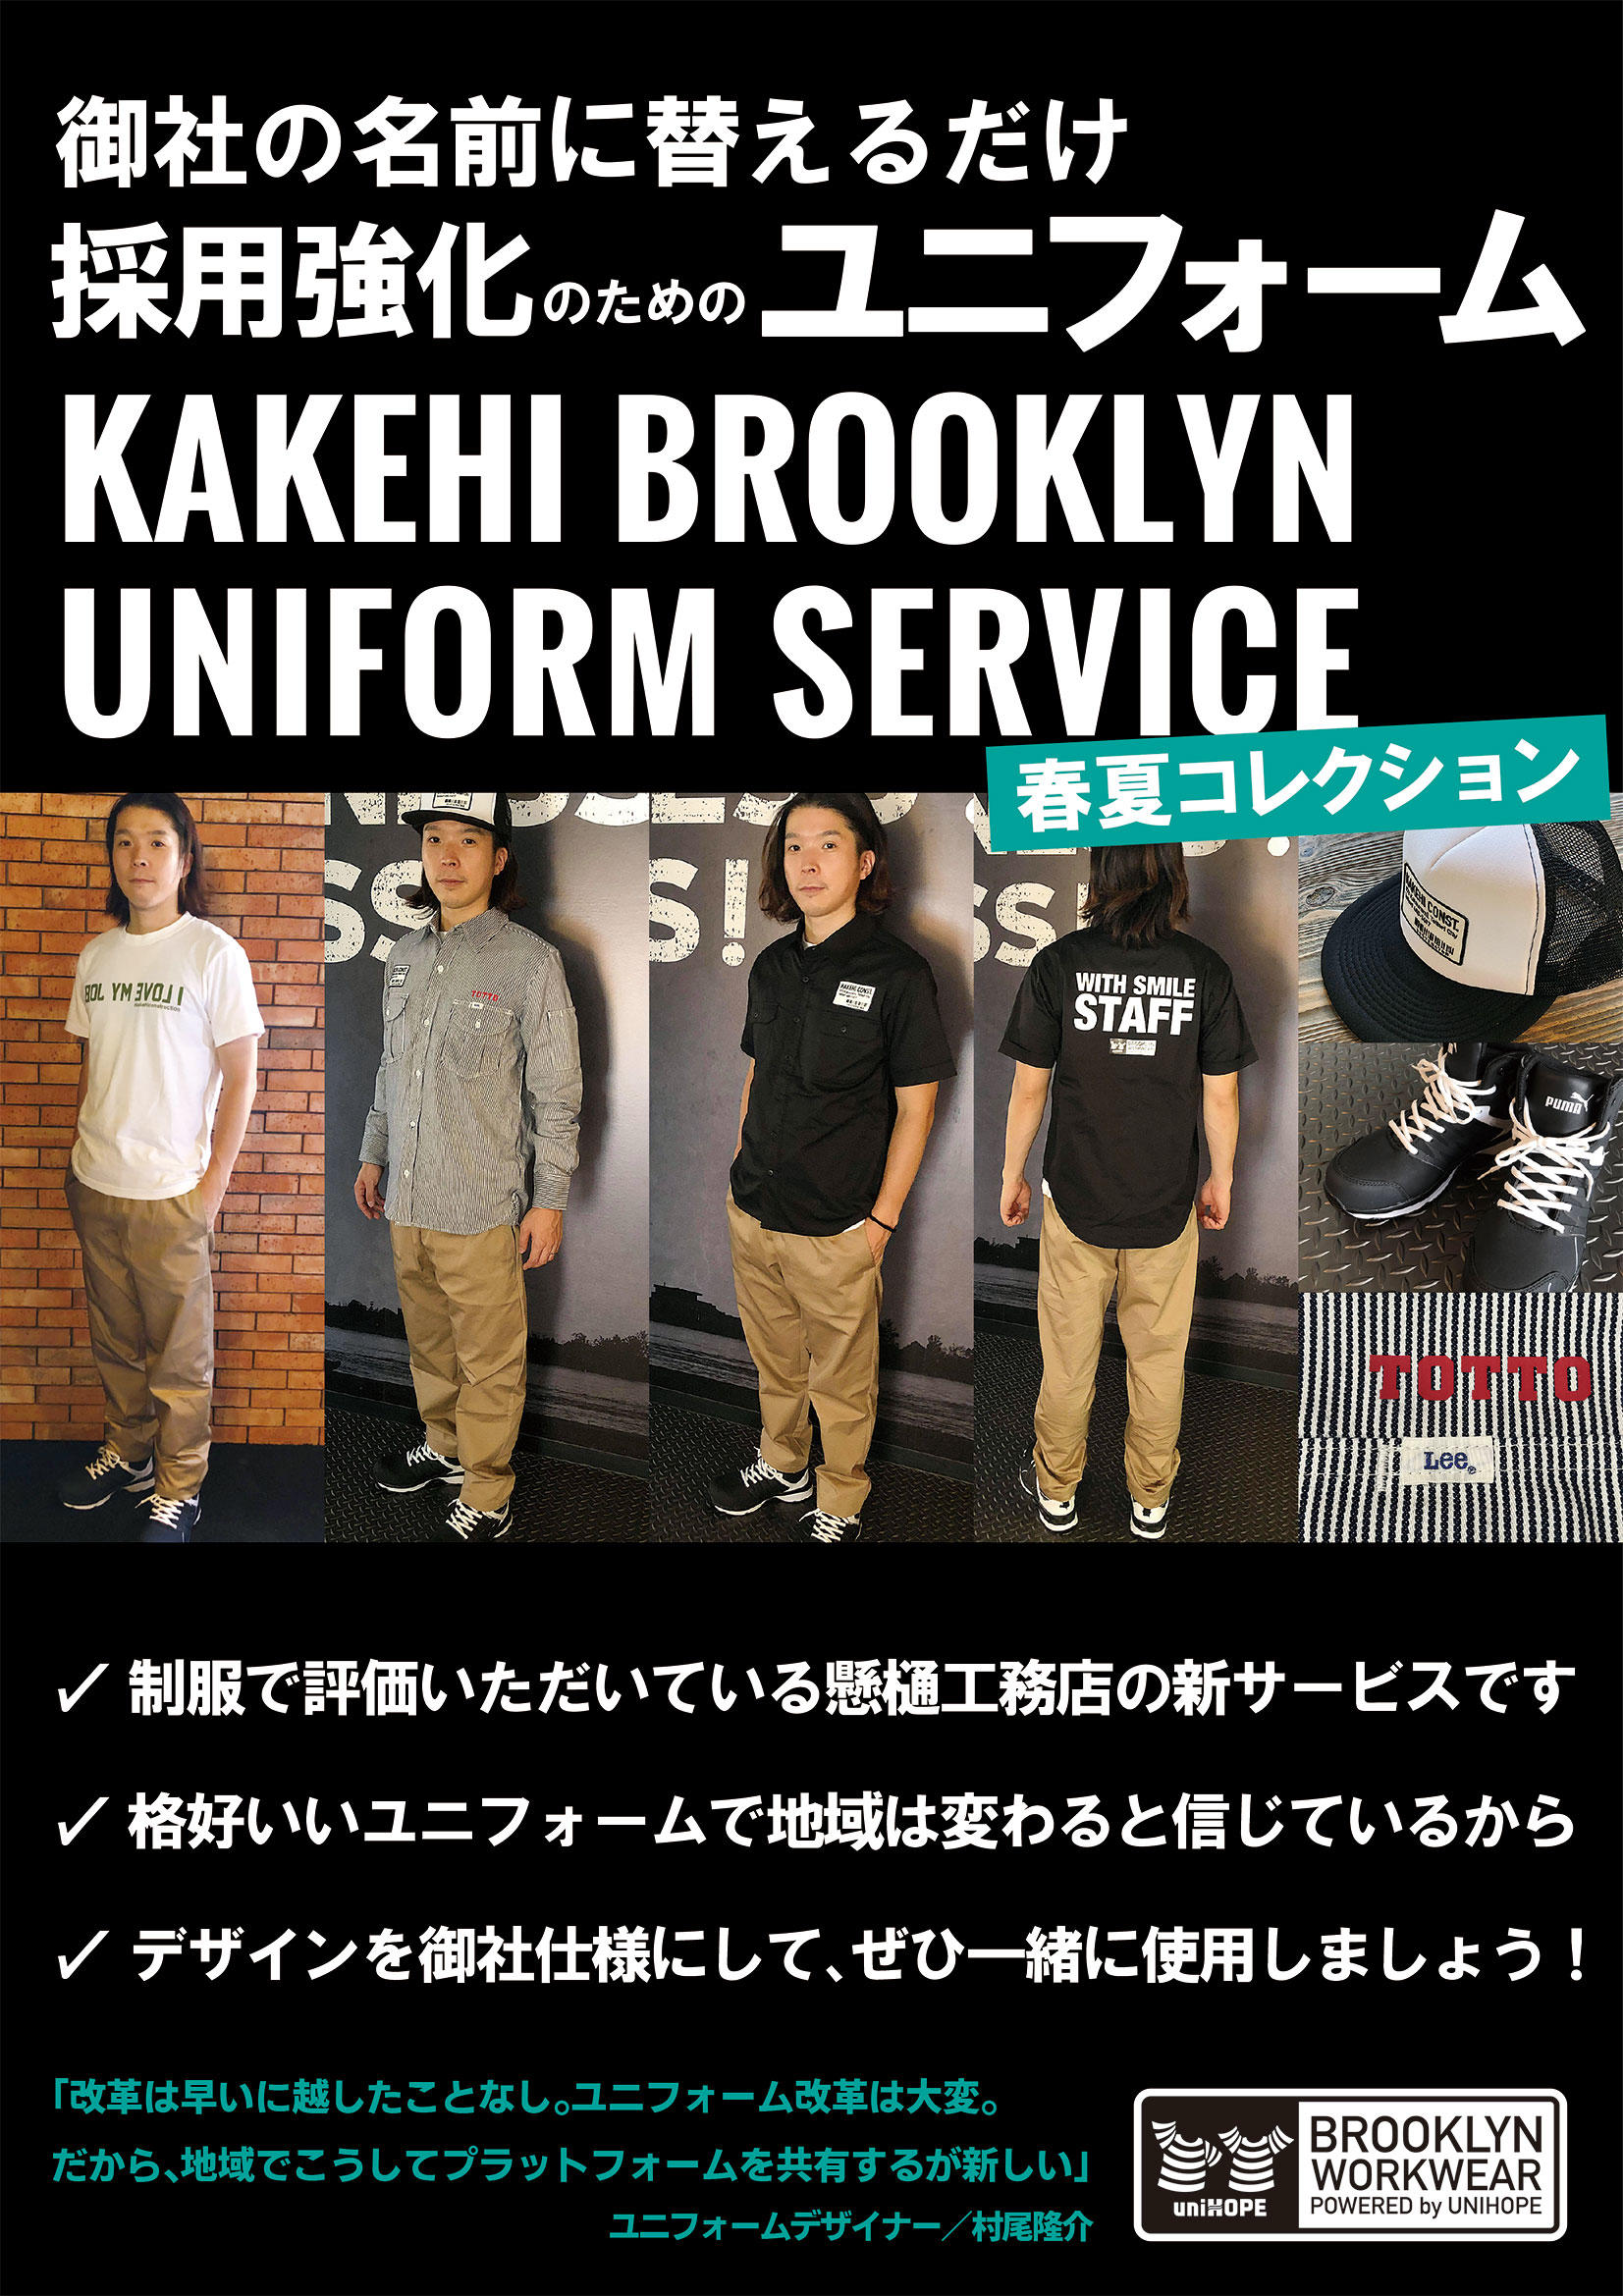 https://www.kakehi-const.co.jp/q_blog/upload/b7aaa07dcb32d93a15ef7cce47a7571ff9018f35.jpg